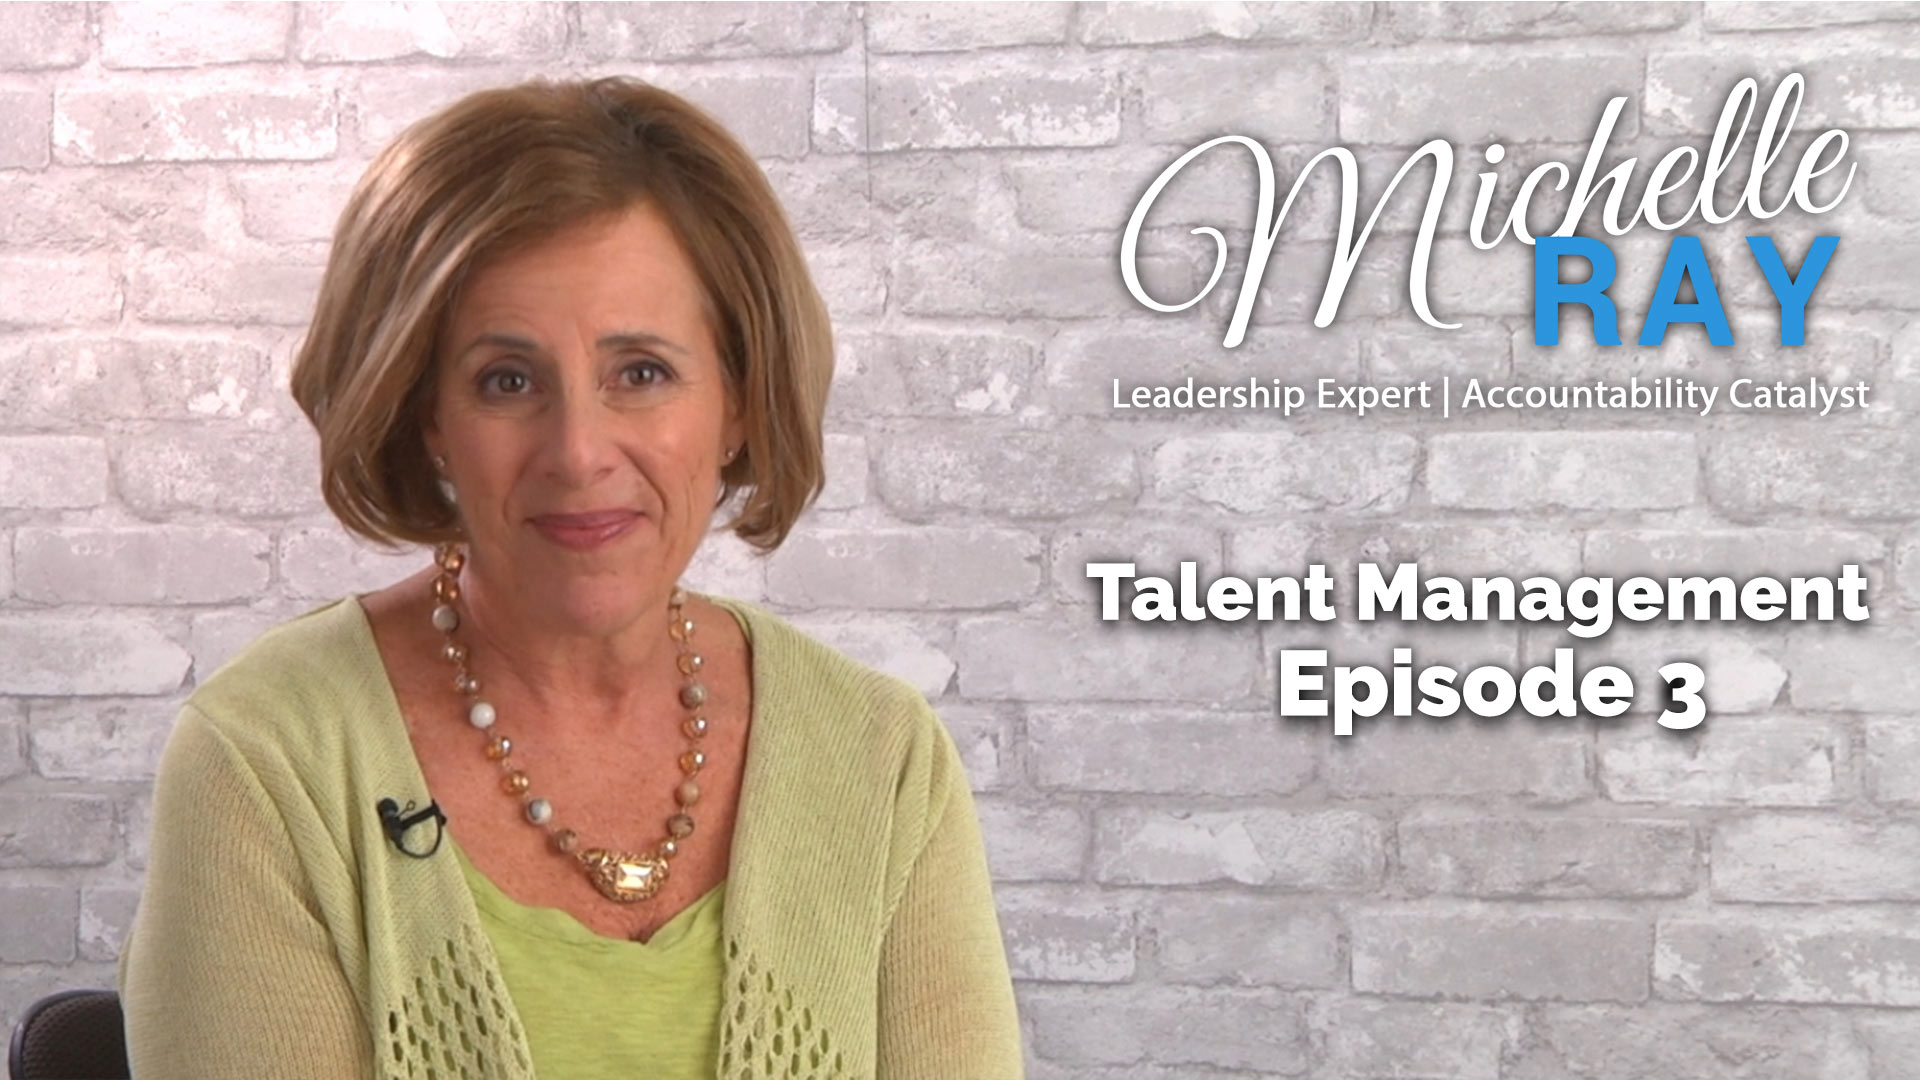 Talent Management and an Outsource Culture